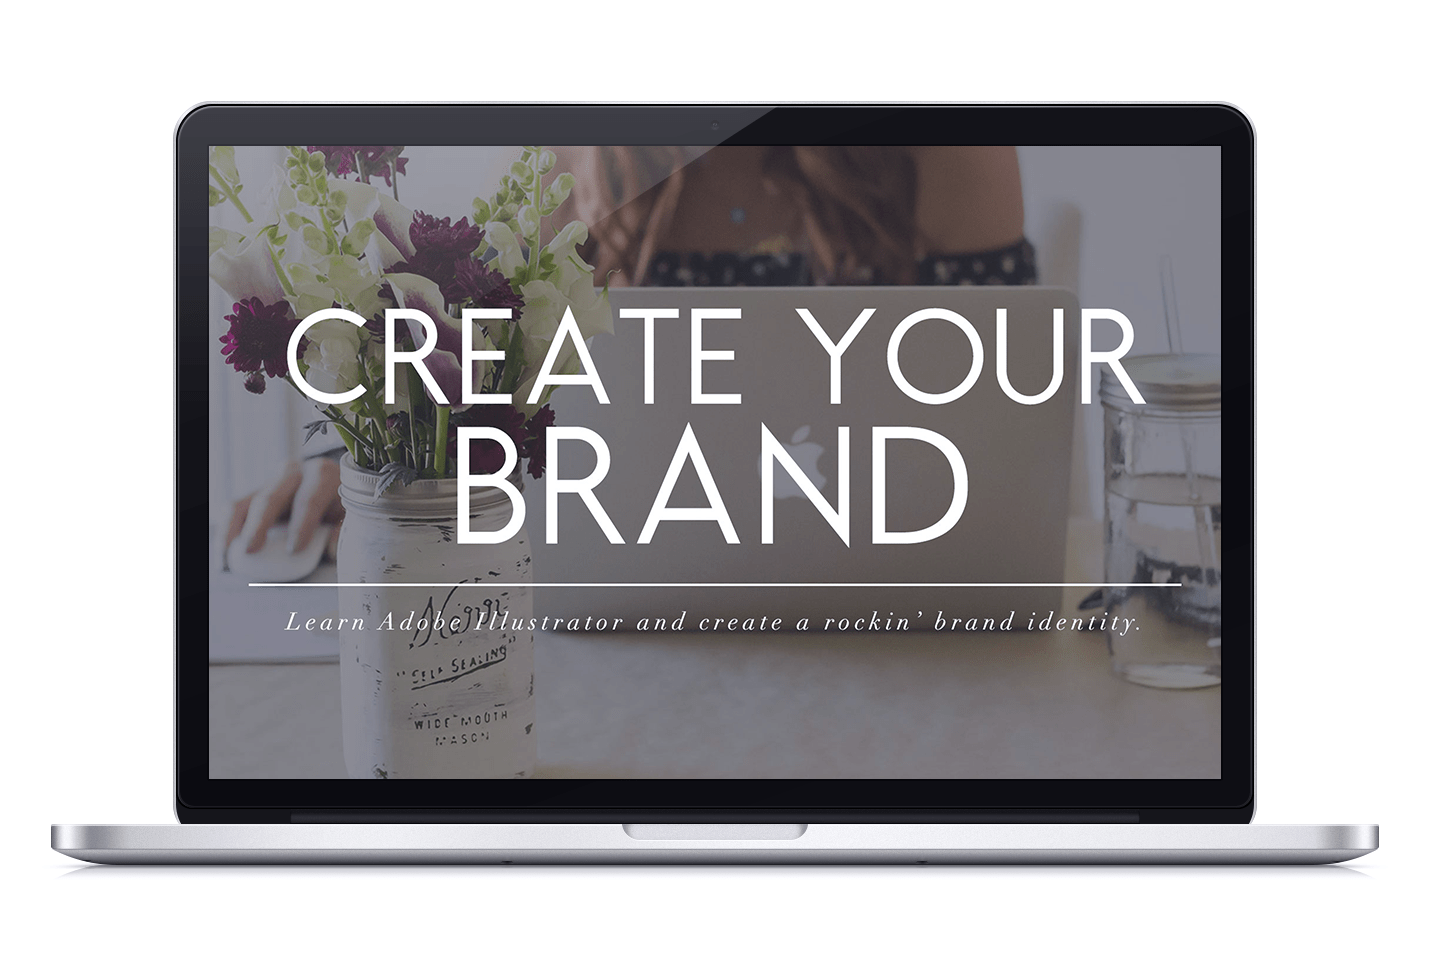 create-your-brand-computer